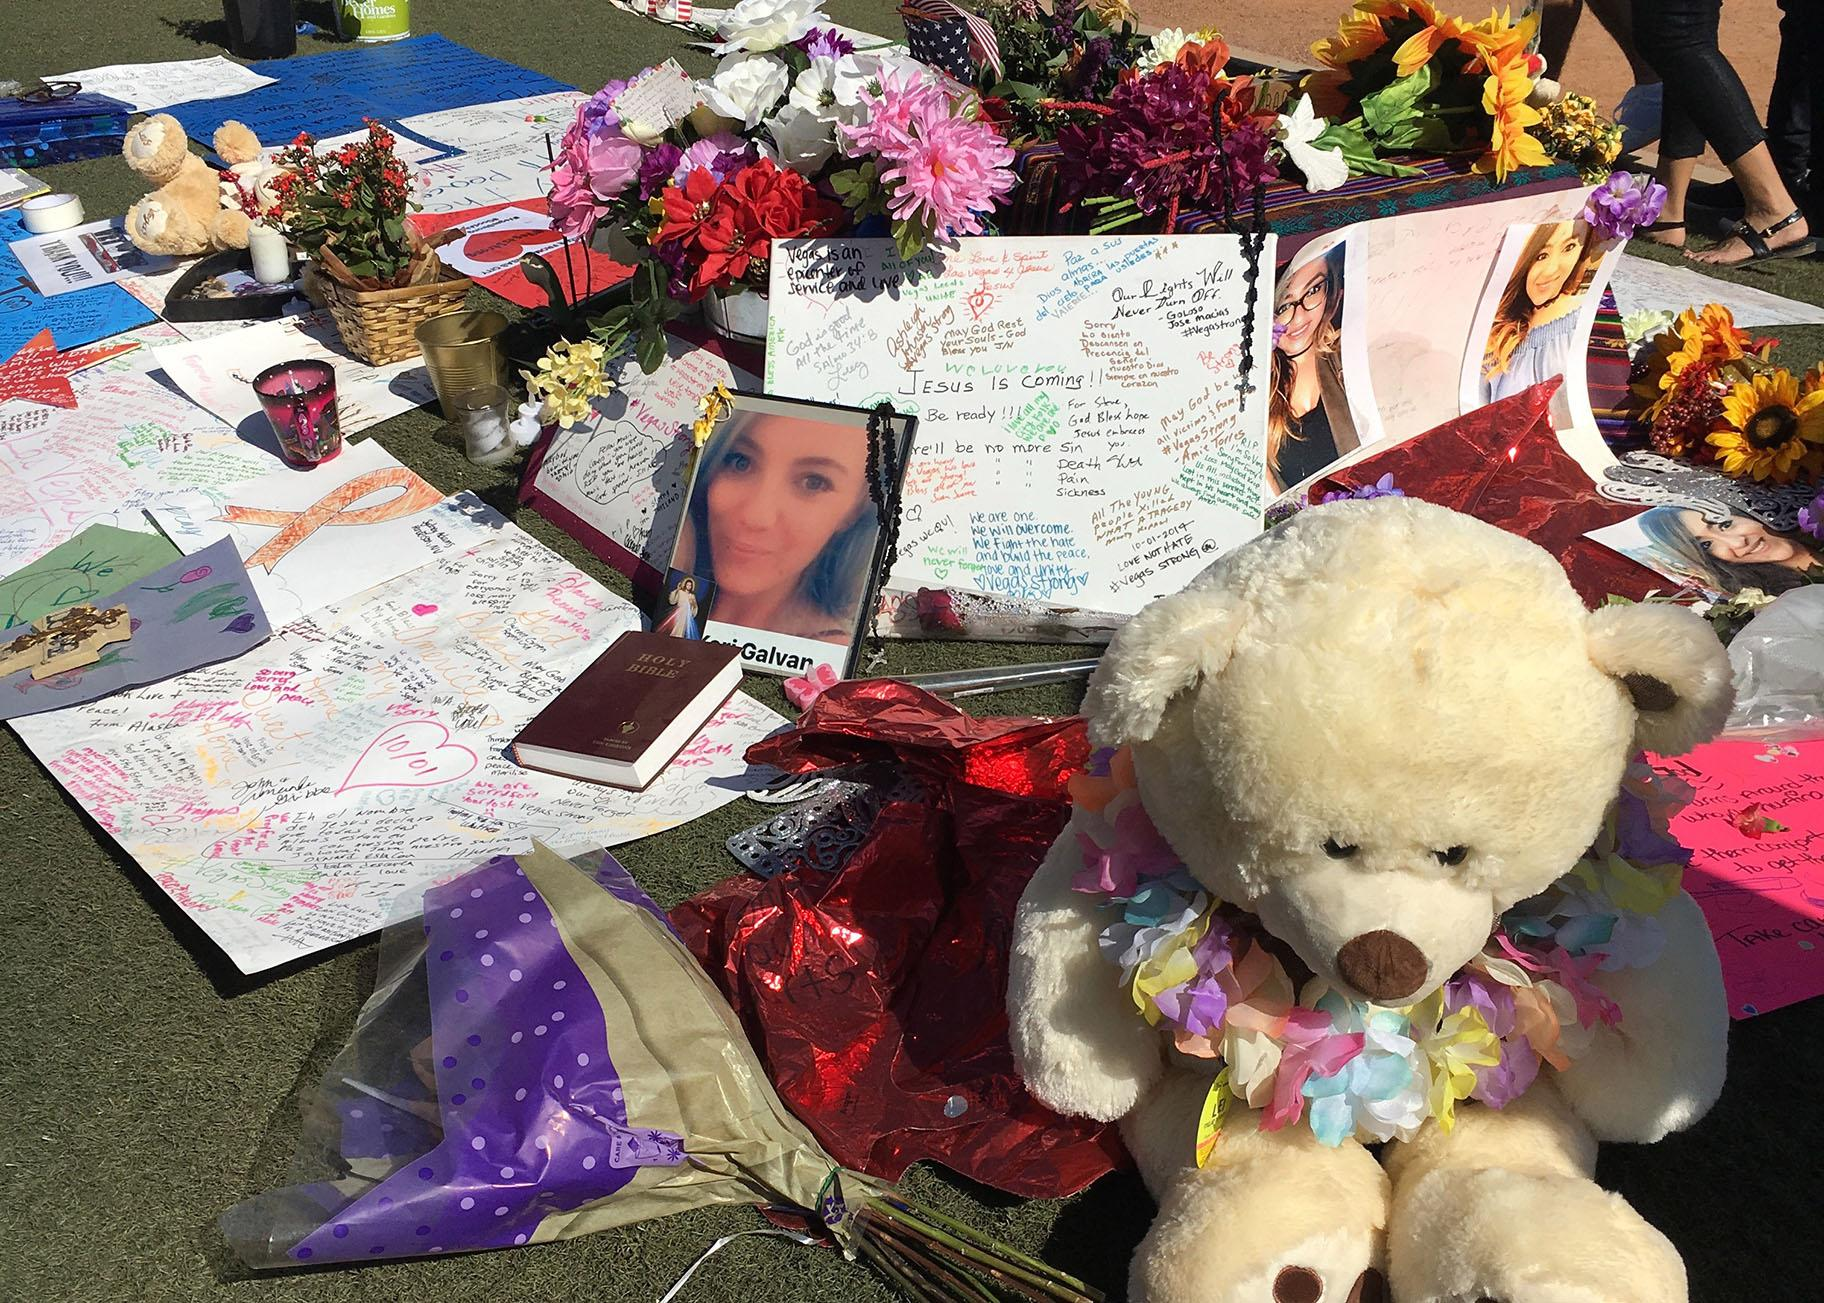 A memorial in Las Vegas for victims of the Oct. 1, 2017 shooting that left 58 dead and more than 500 wounded. (Jay Smith / WTTW News)